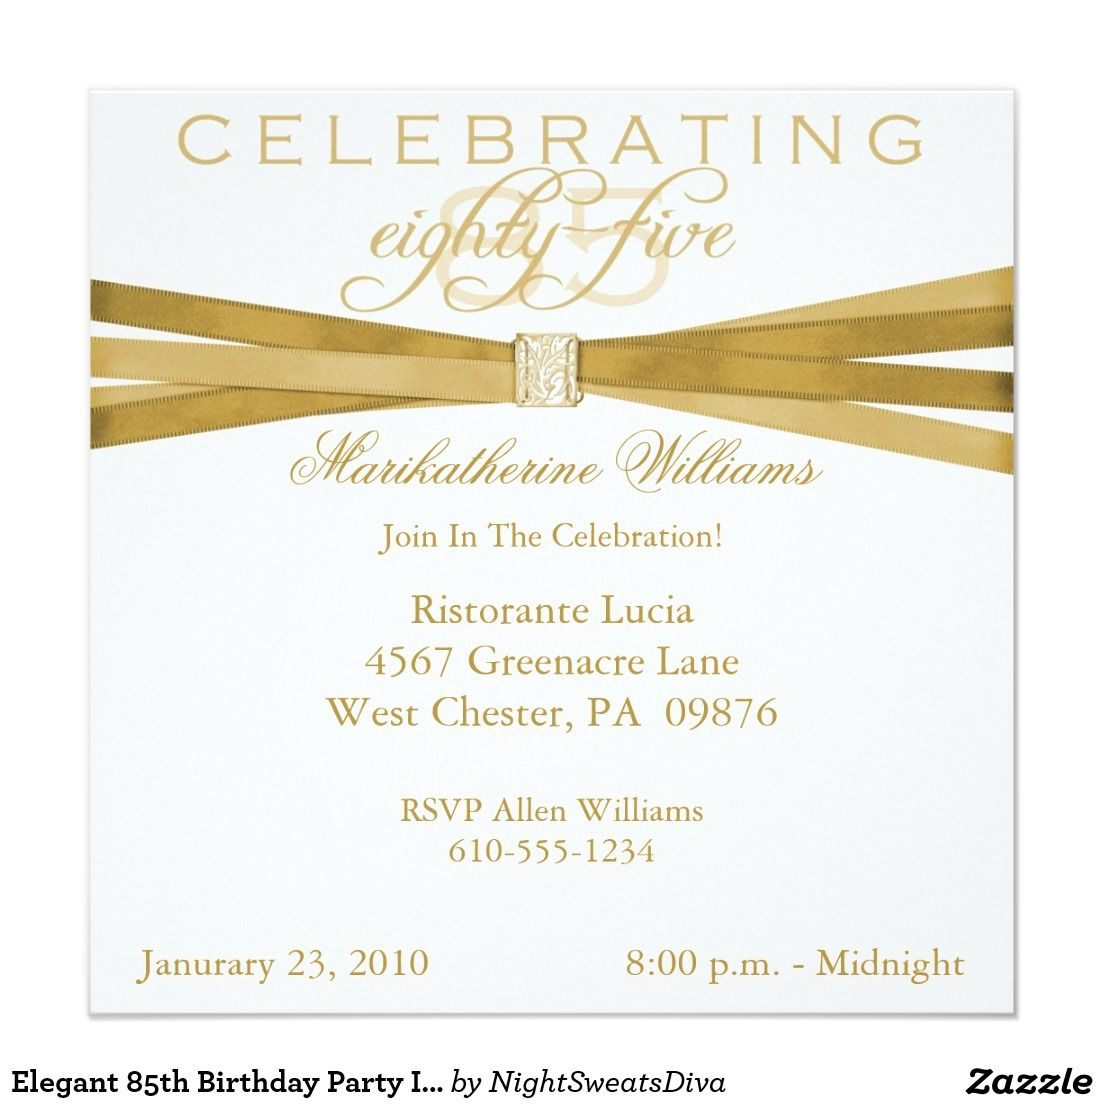 Elegant 85th Birthday Party Invitations 525 Square Invitation Card